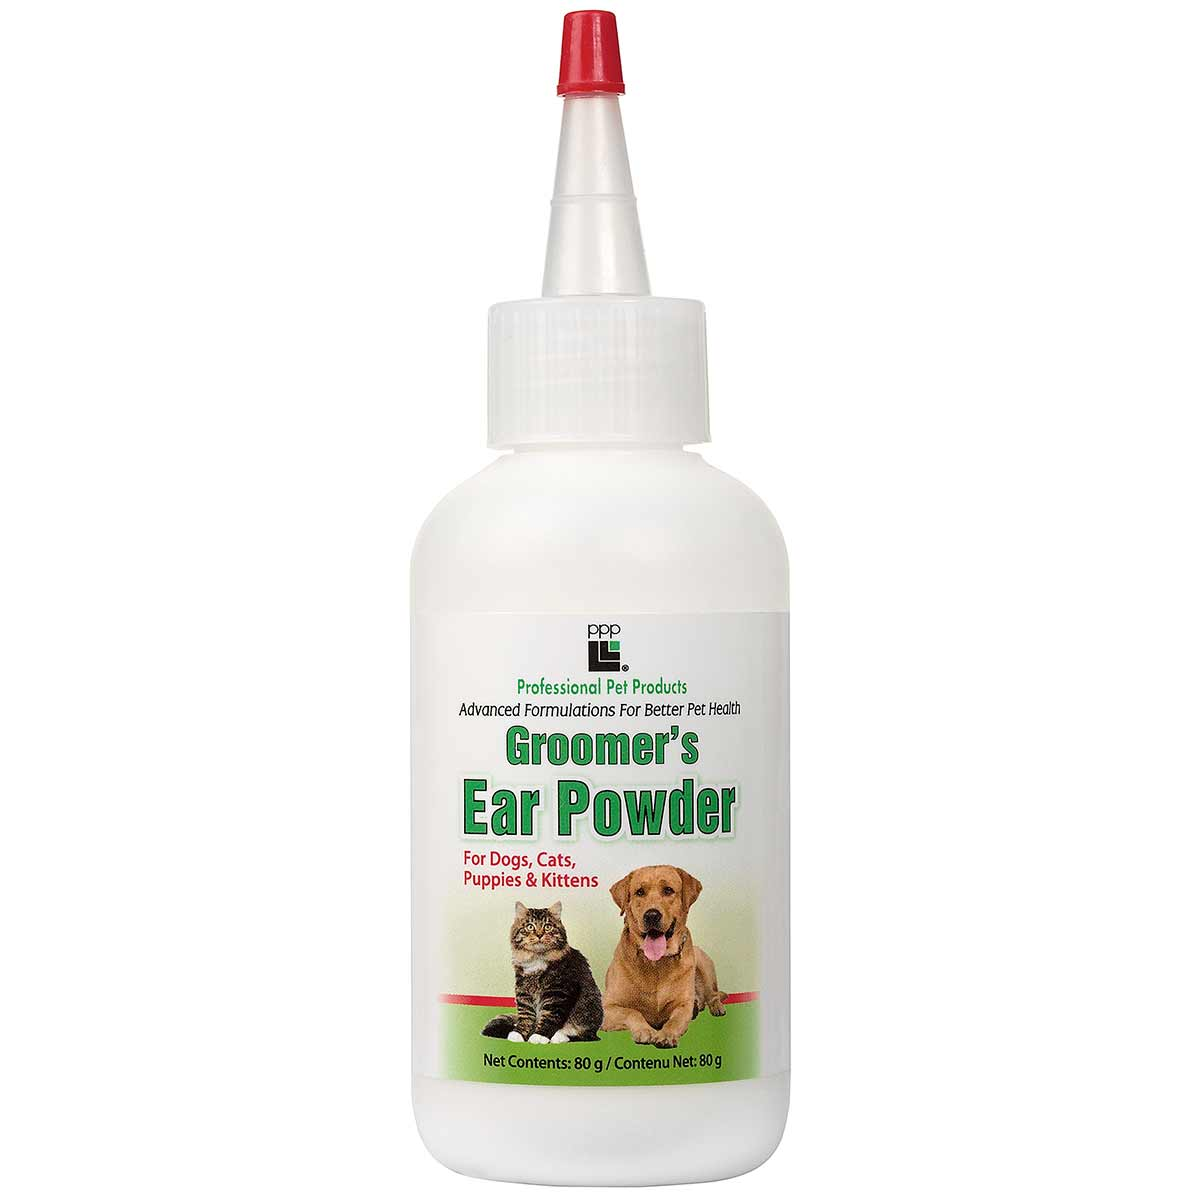 80 Gram Professional Pet Products Groomer's Ear Powder at Ryan's Pet Supplies